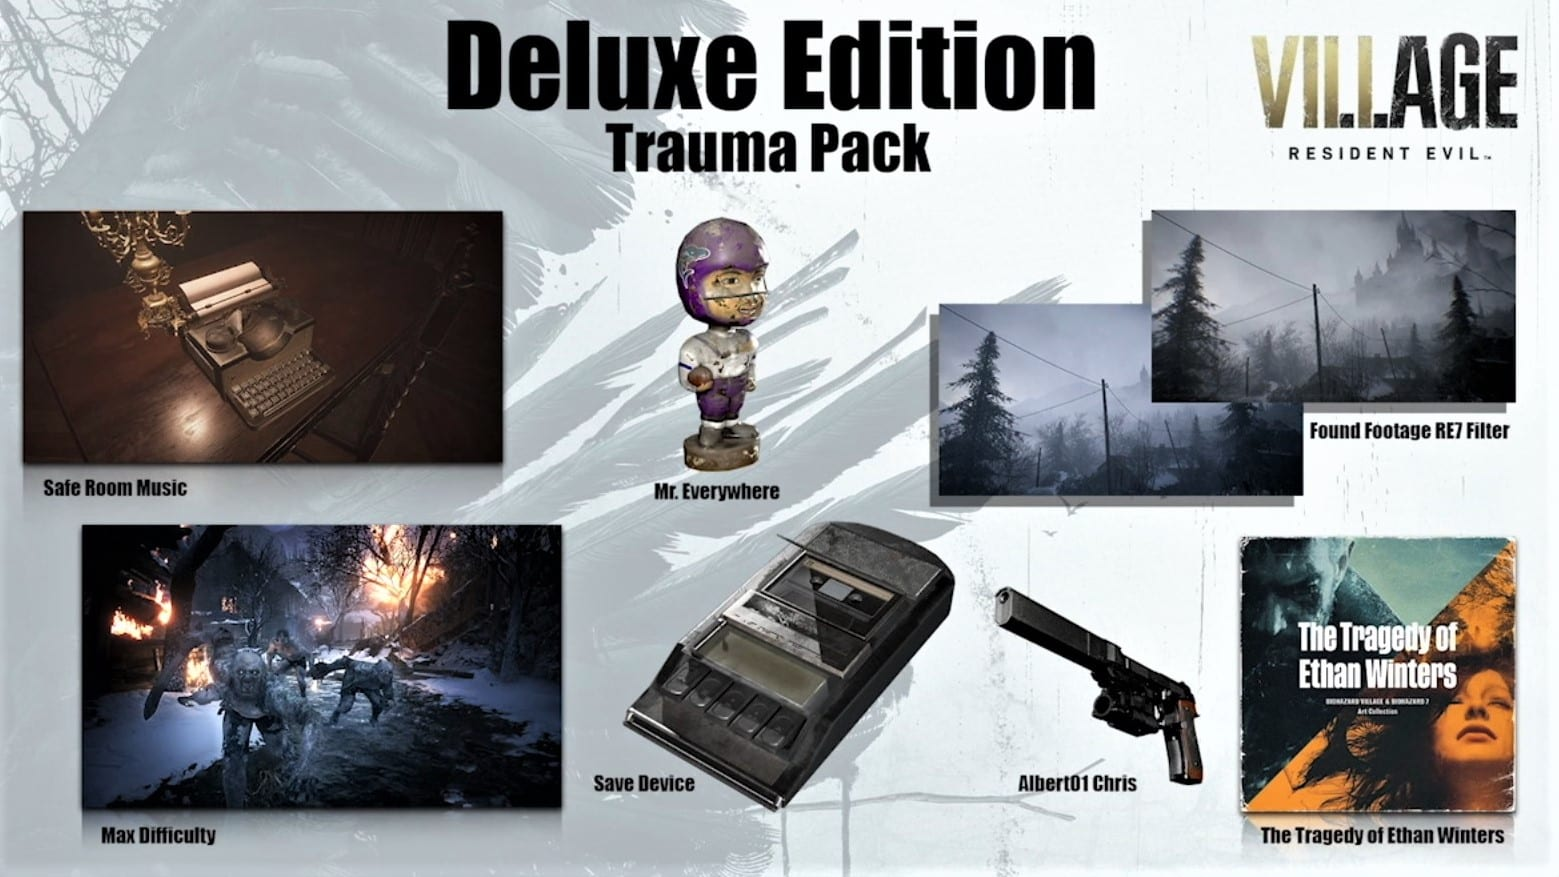 Resident Evil 8 Village Deluxe Edition Trauma Pack